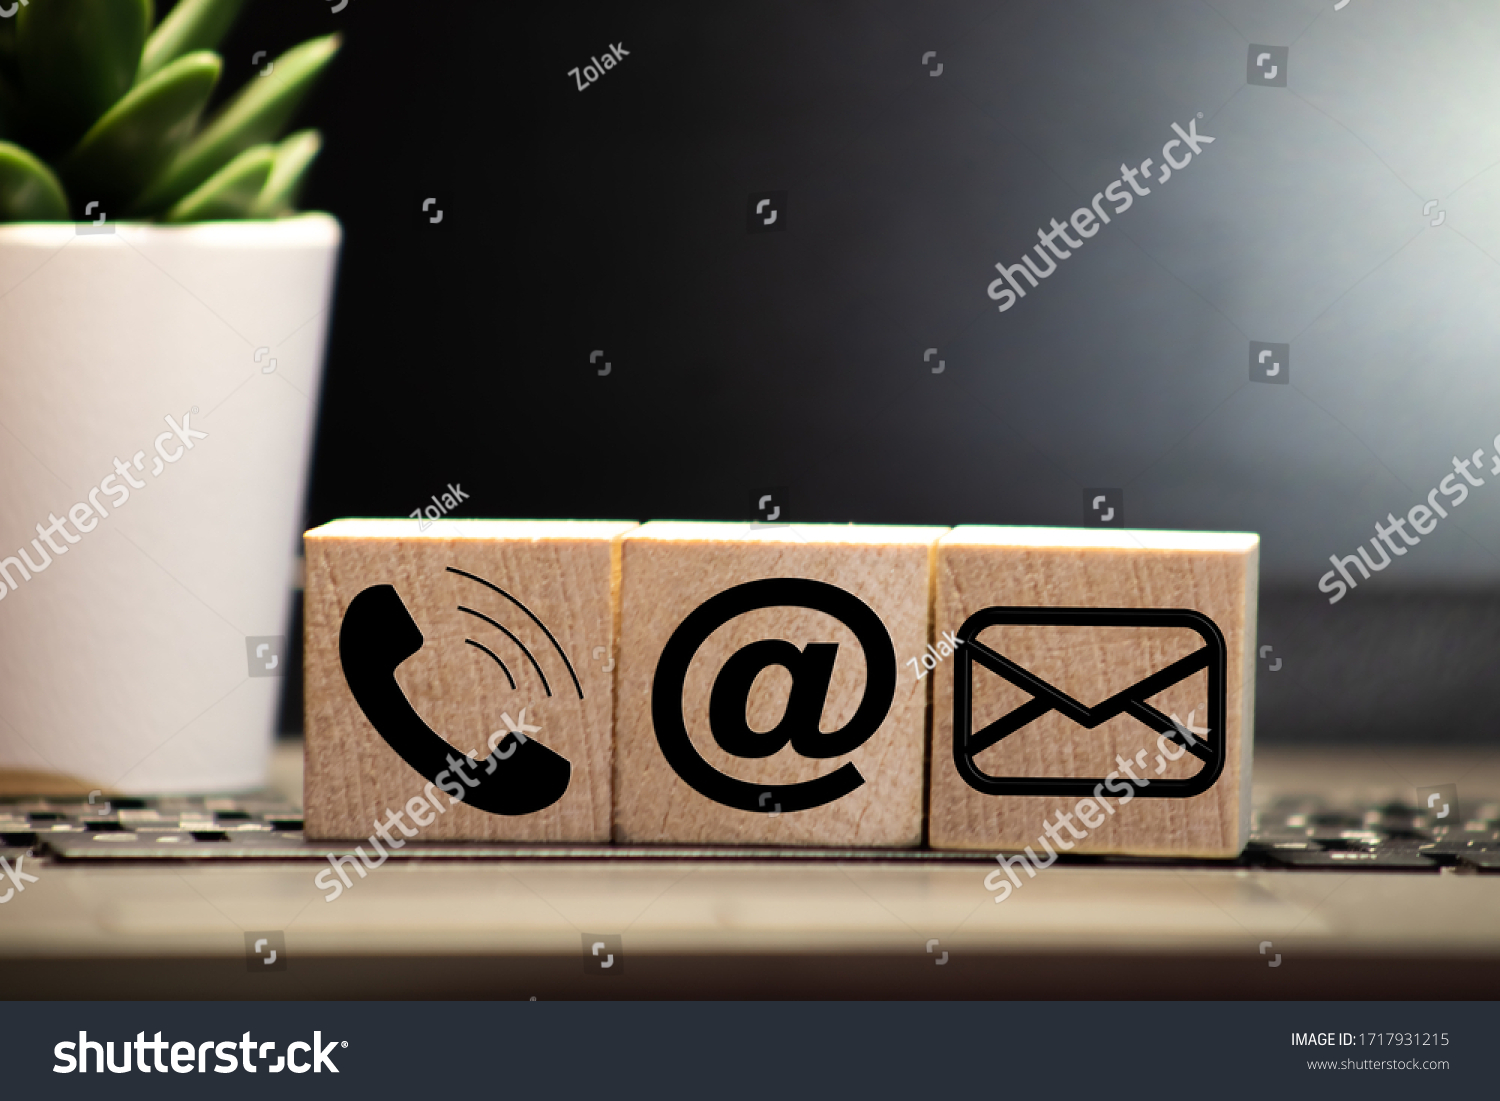 Website and Internet contact us page concept with black icons #1717931215